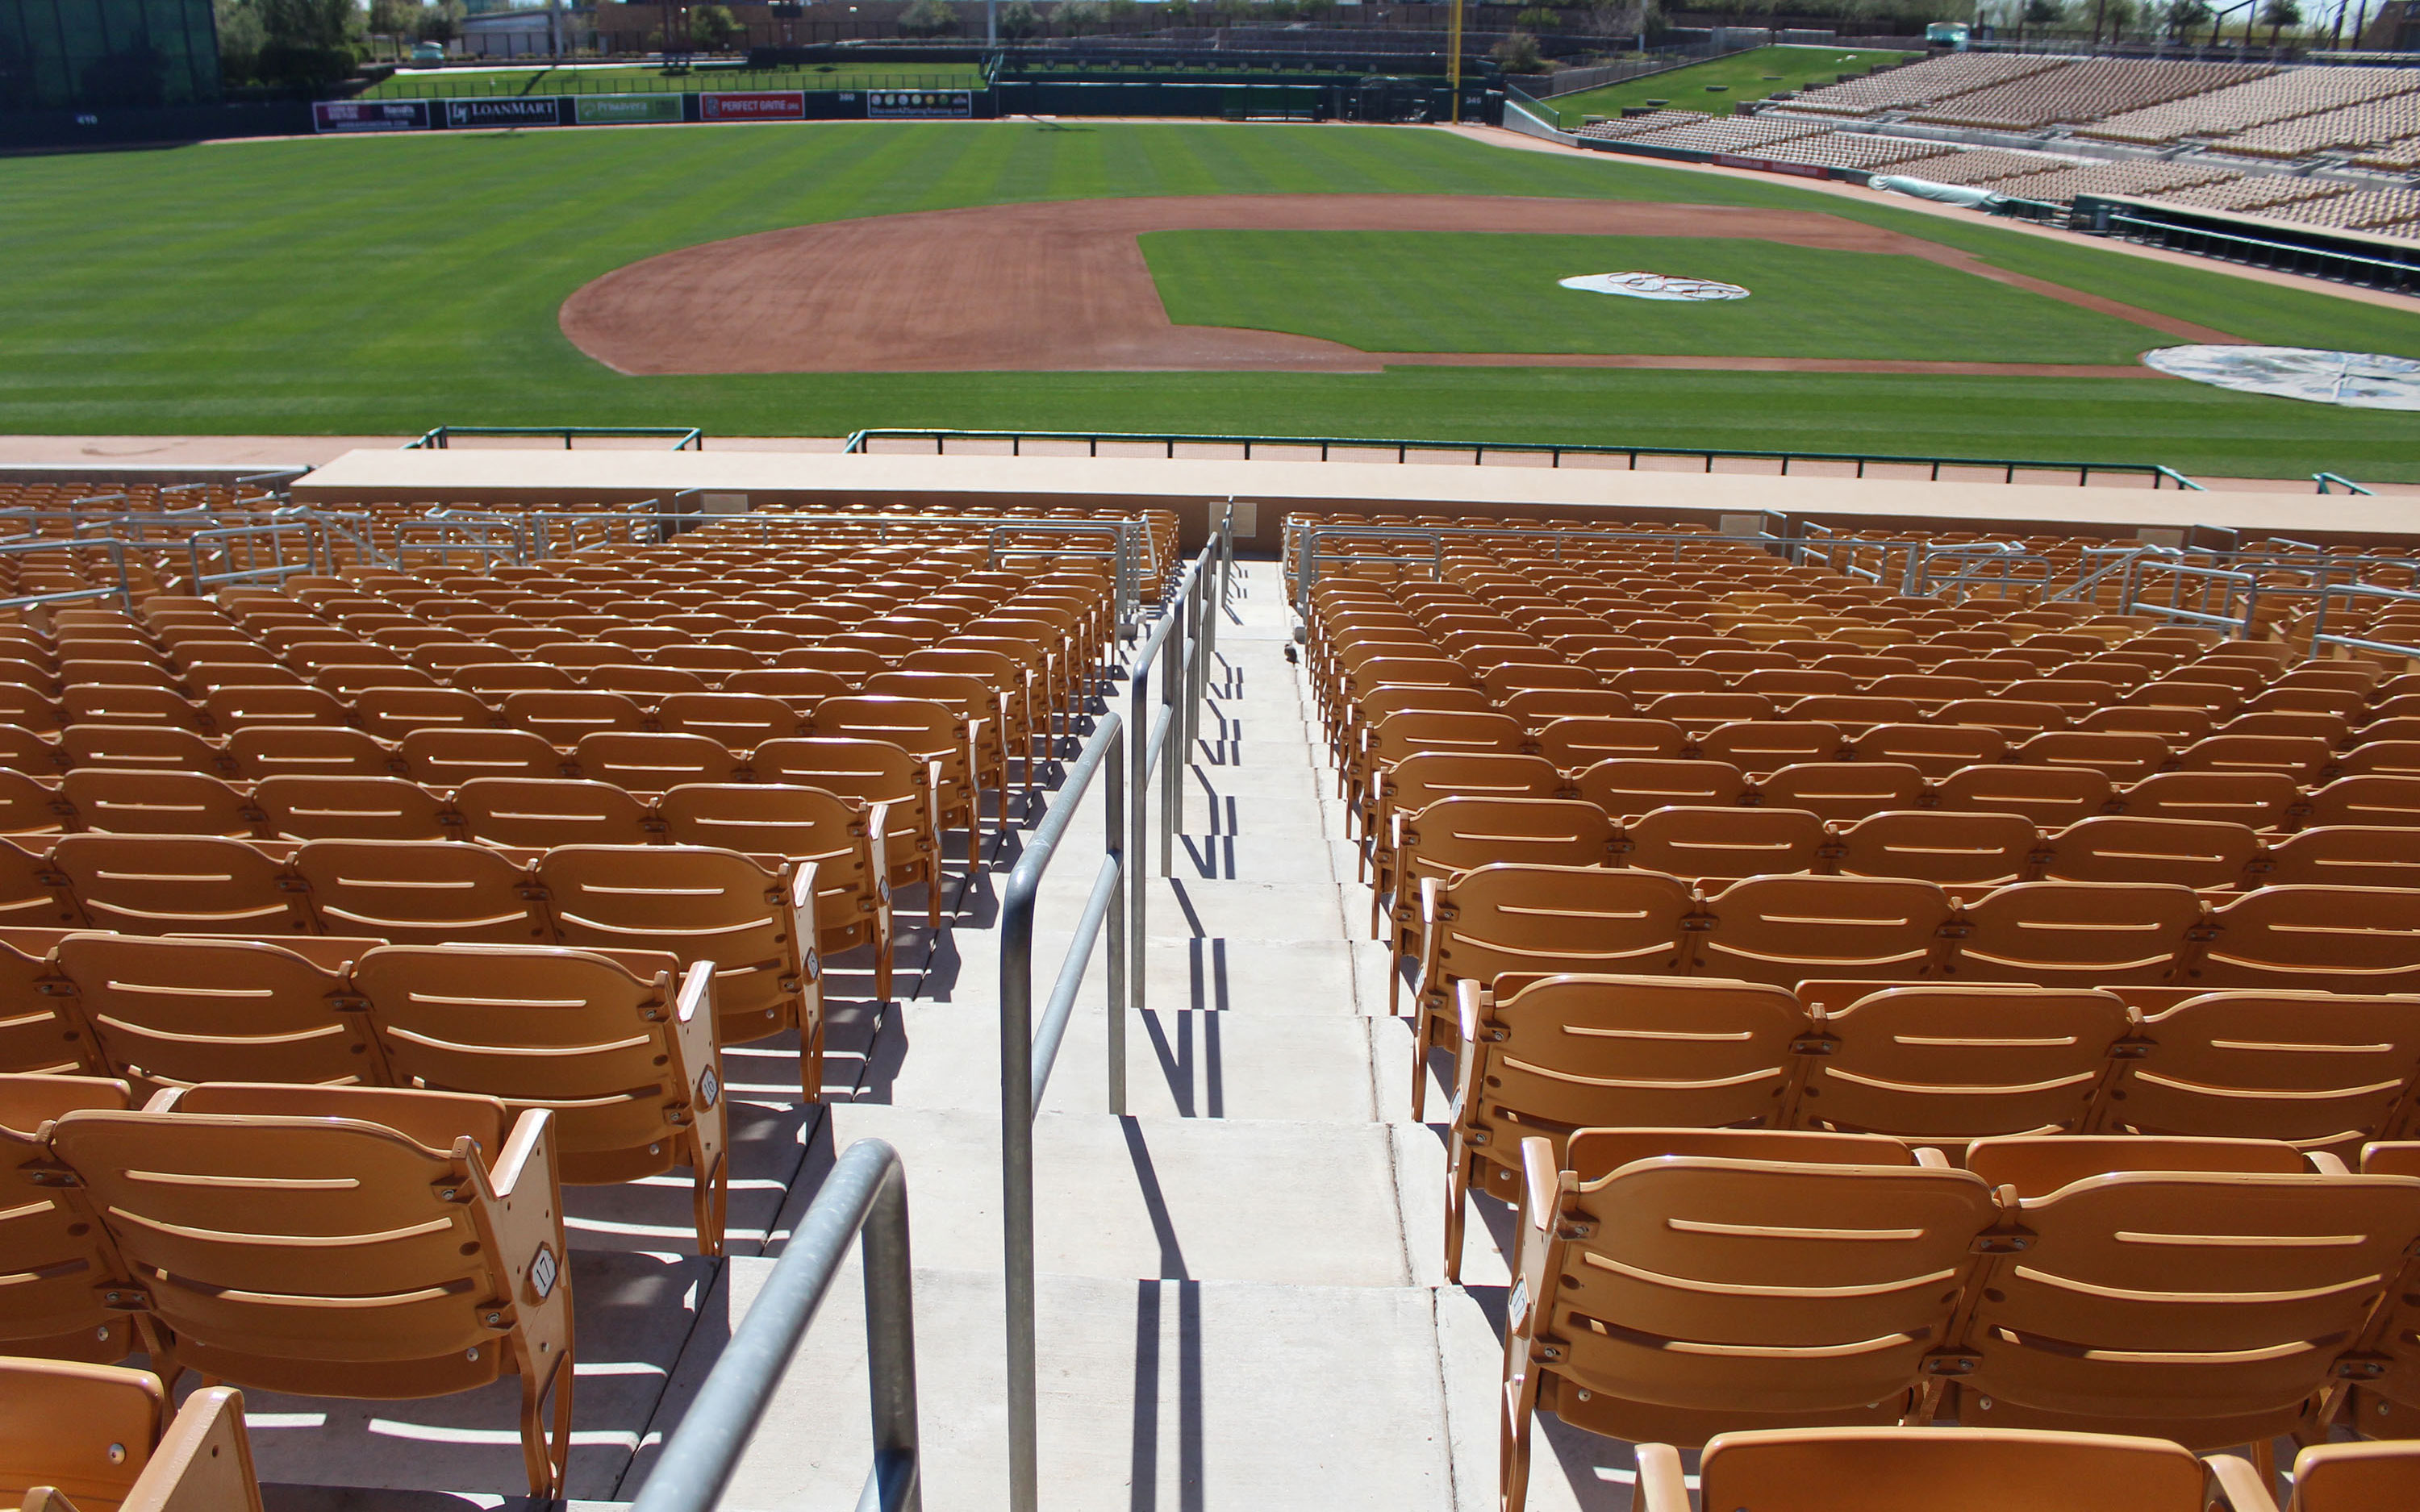 b62cdf7e3 Camelback Ranch in Glendale has hosted the Los Angeles Dodgers and Chicago  White Sox for spring training since its opening in 2009.